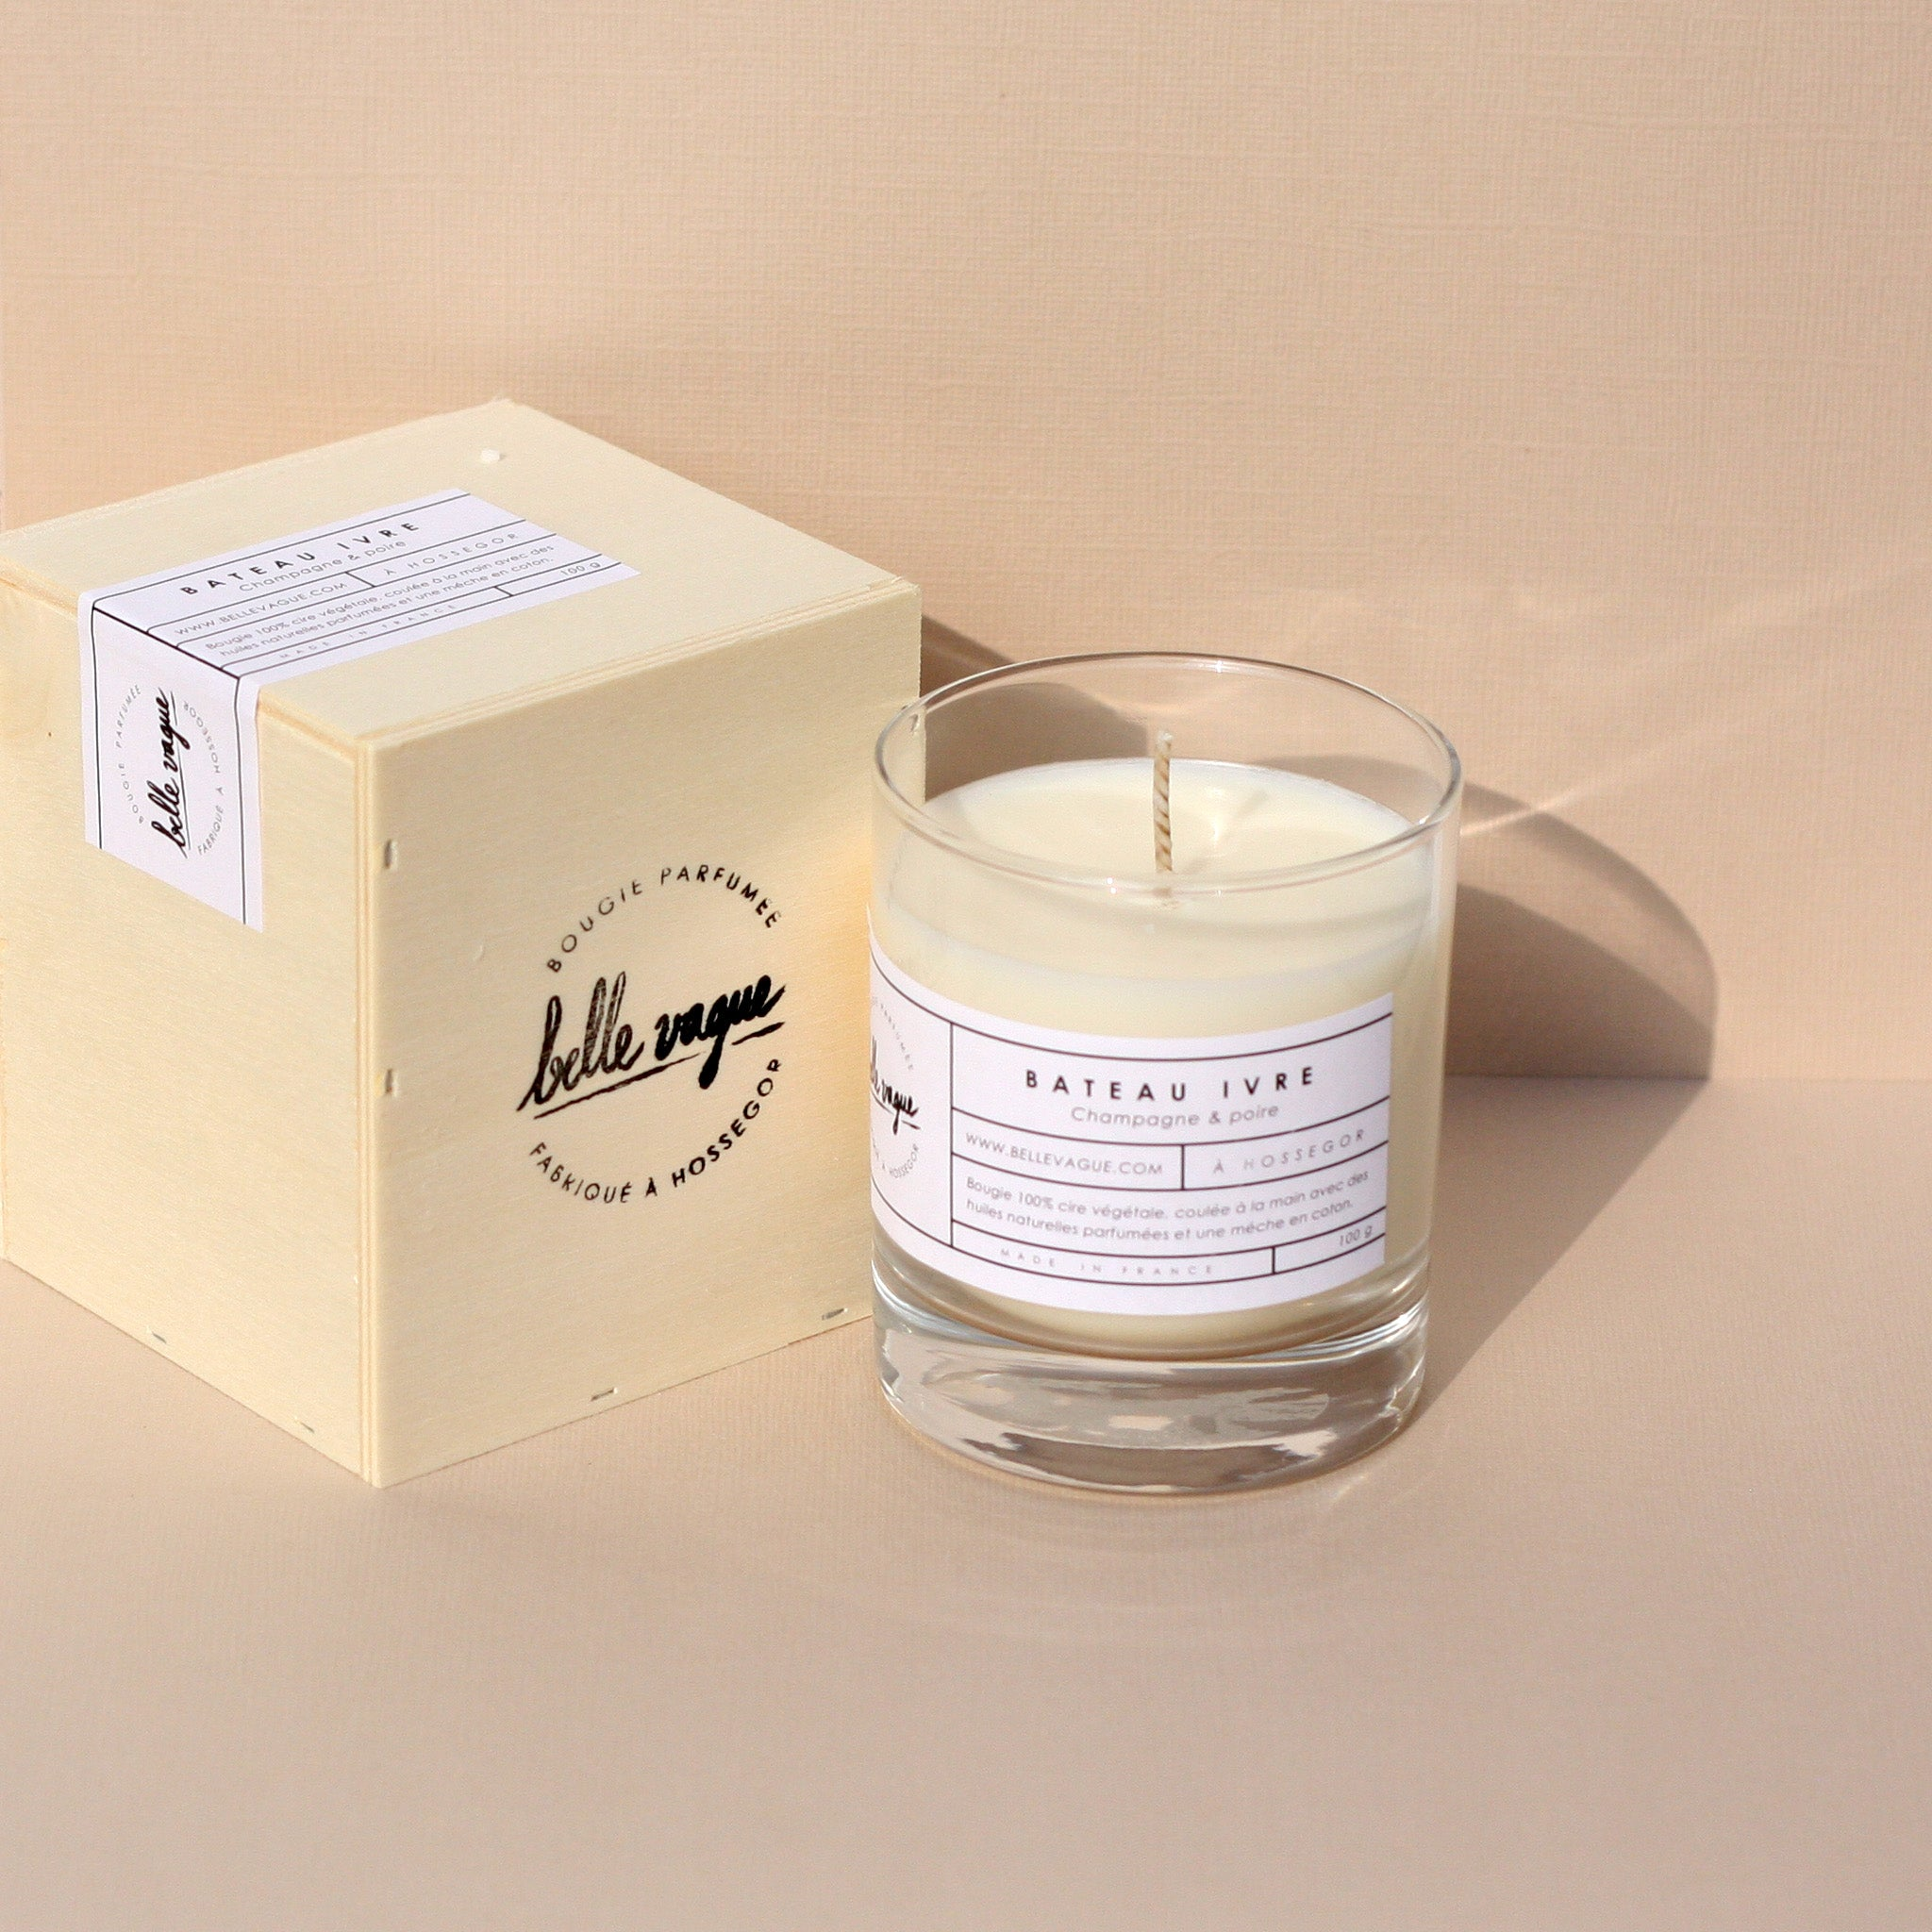 Belle Vague Bateau Ivre Scented Candel Champagne & Pear - Unik by Nature